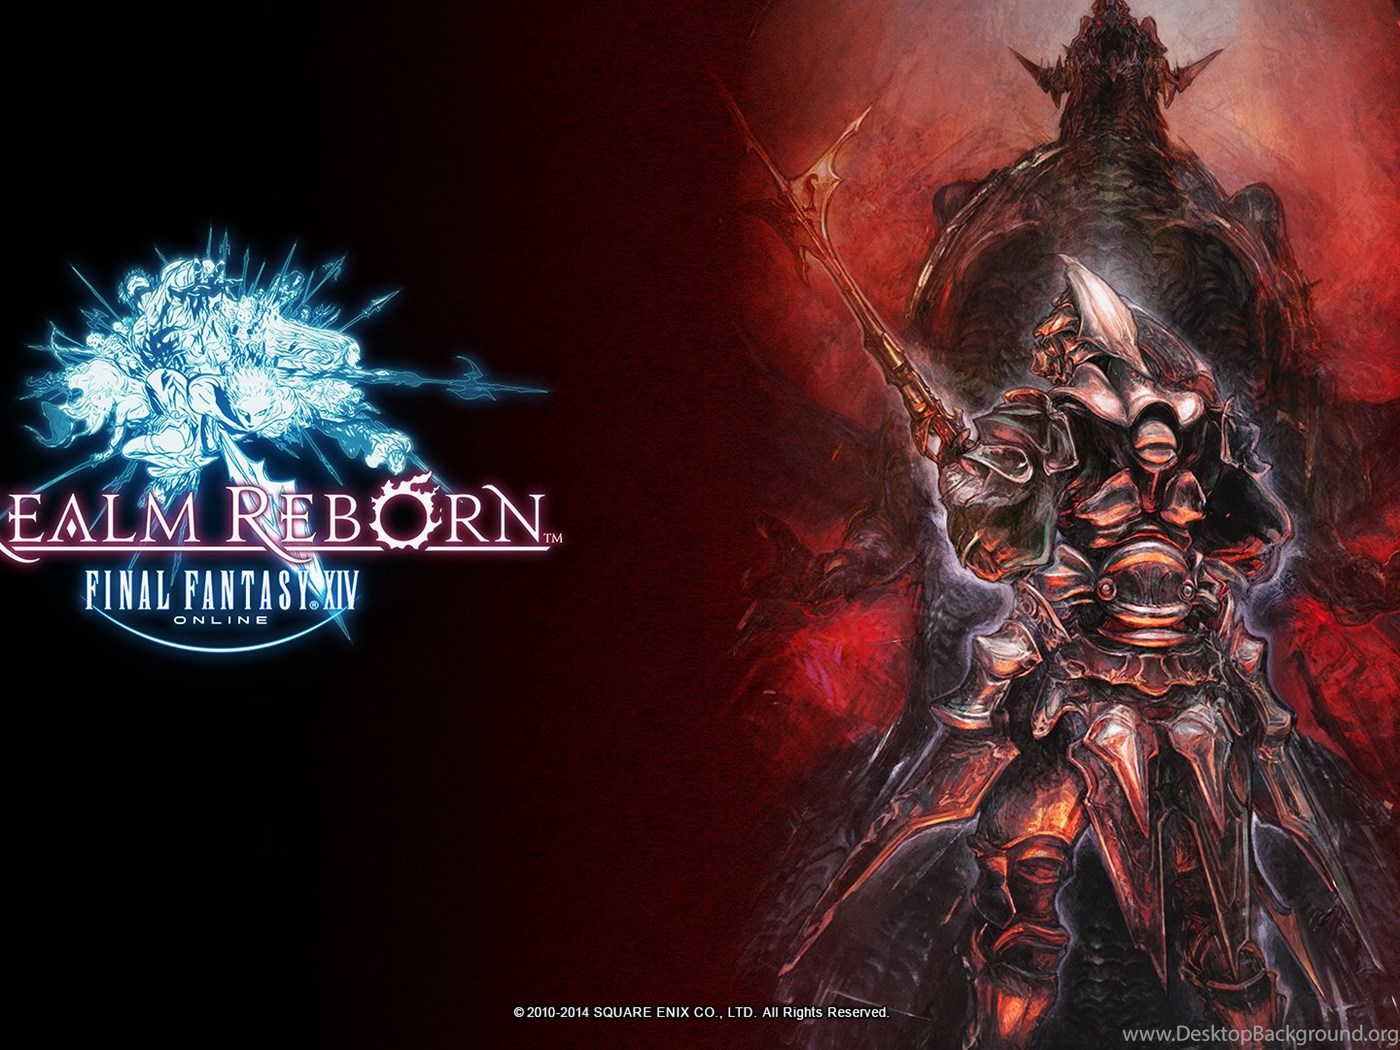 New Final Fantasy Xiv A Realm Reborn Wallpapers Featuring Gaius